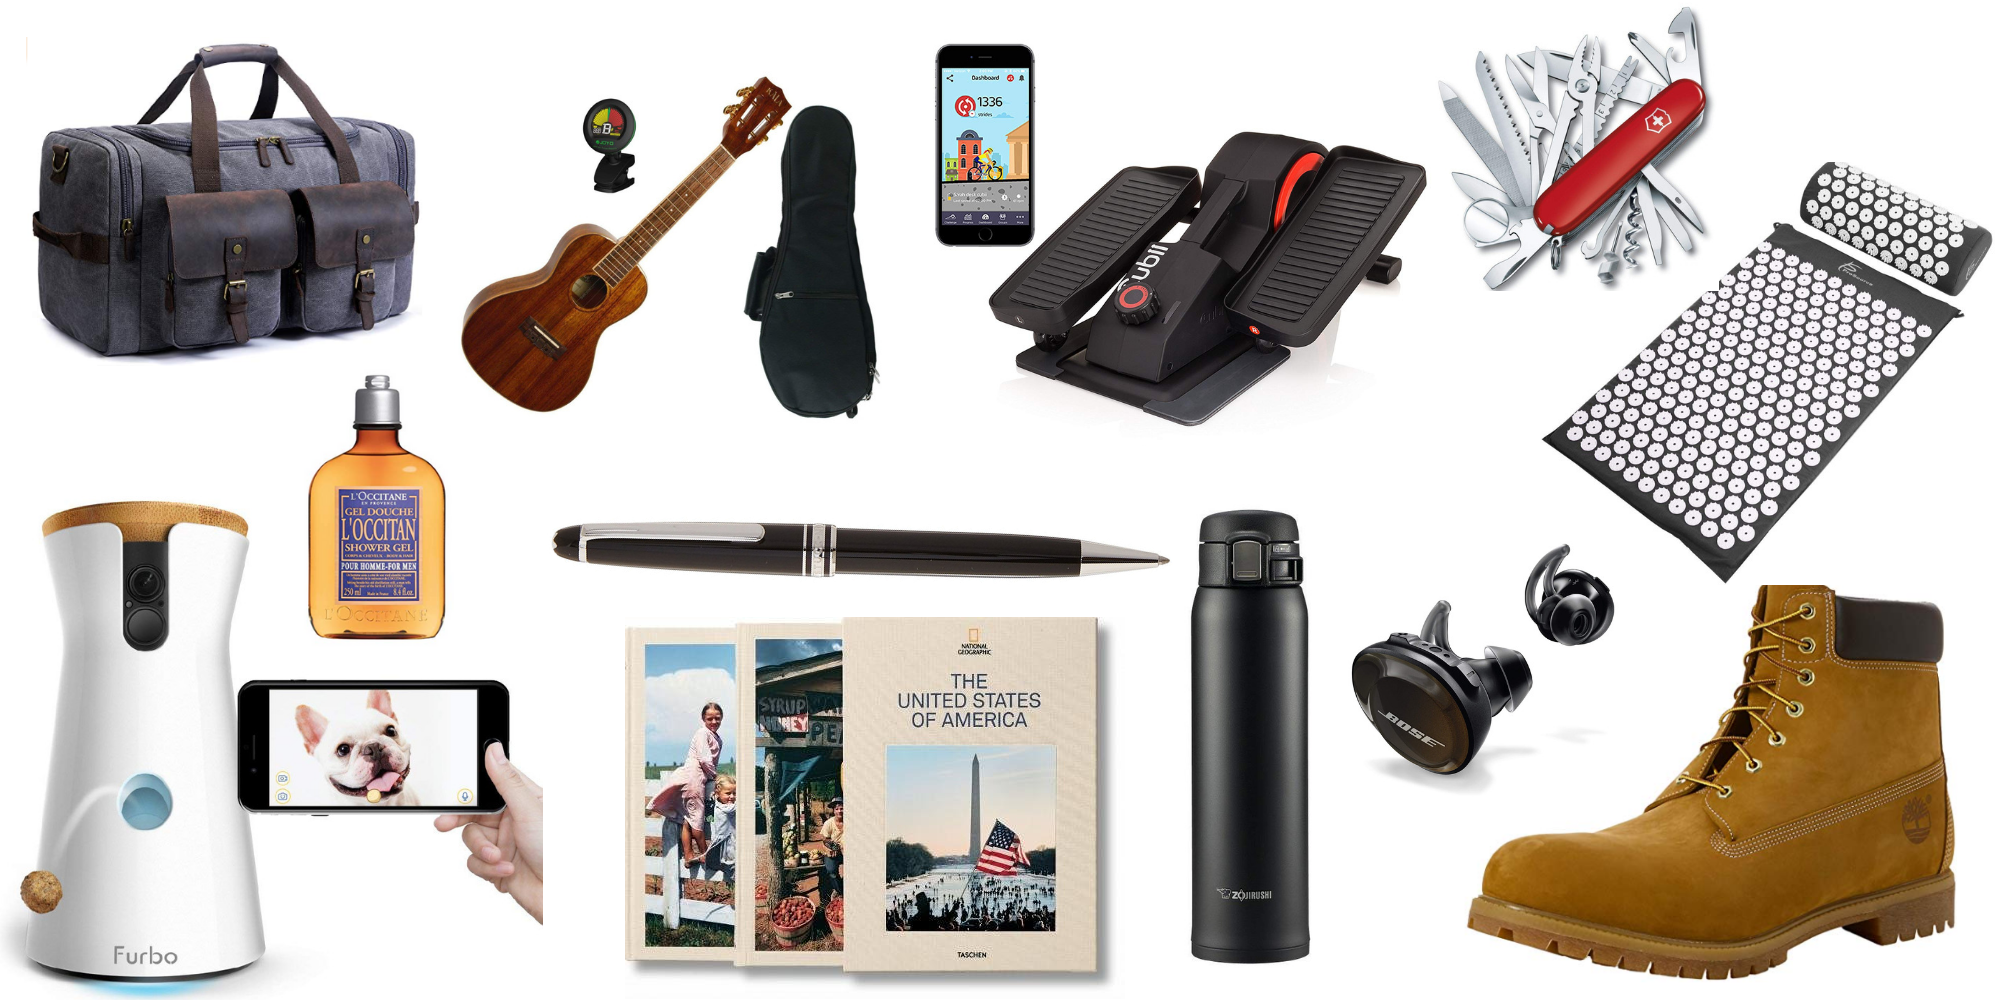 Best 50 Gifts For Dads (On Amazon) That Any Dad Will Love